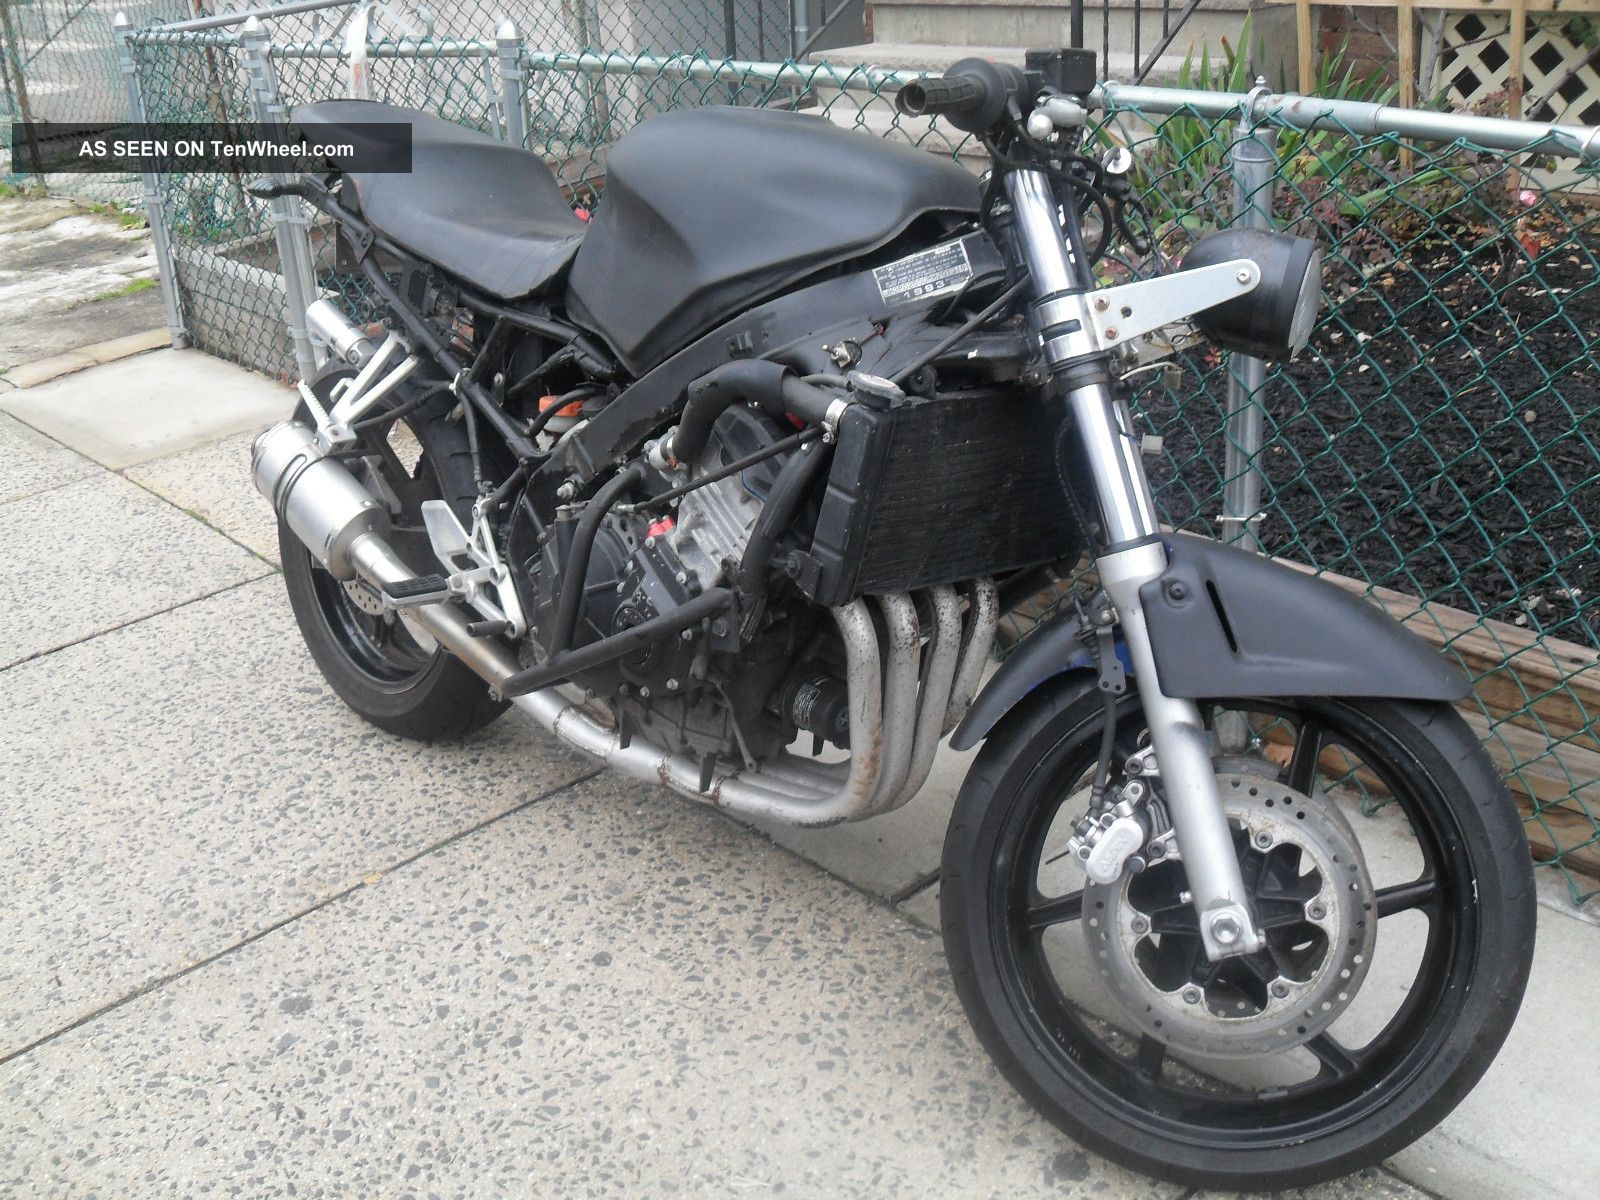 Honda Cbr600 F2 Stunt Bike Streetfighter With Title 2000 Or Make Offer